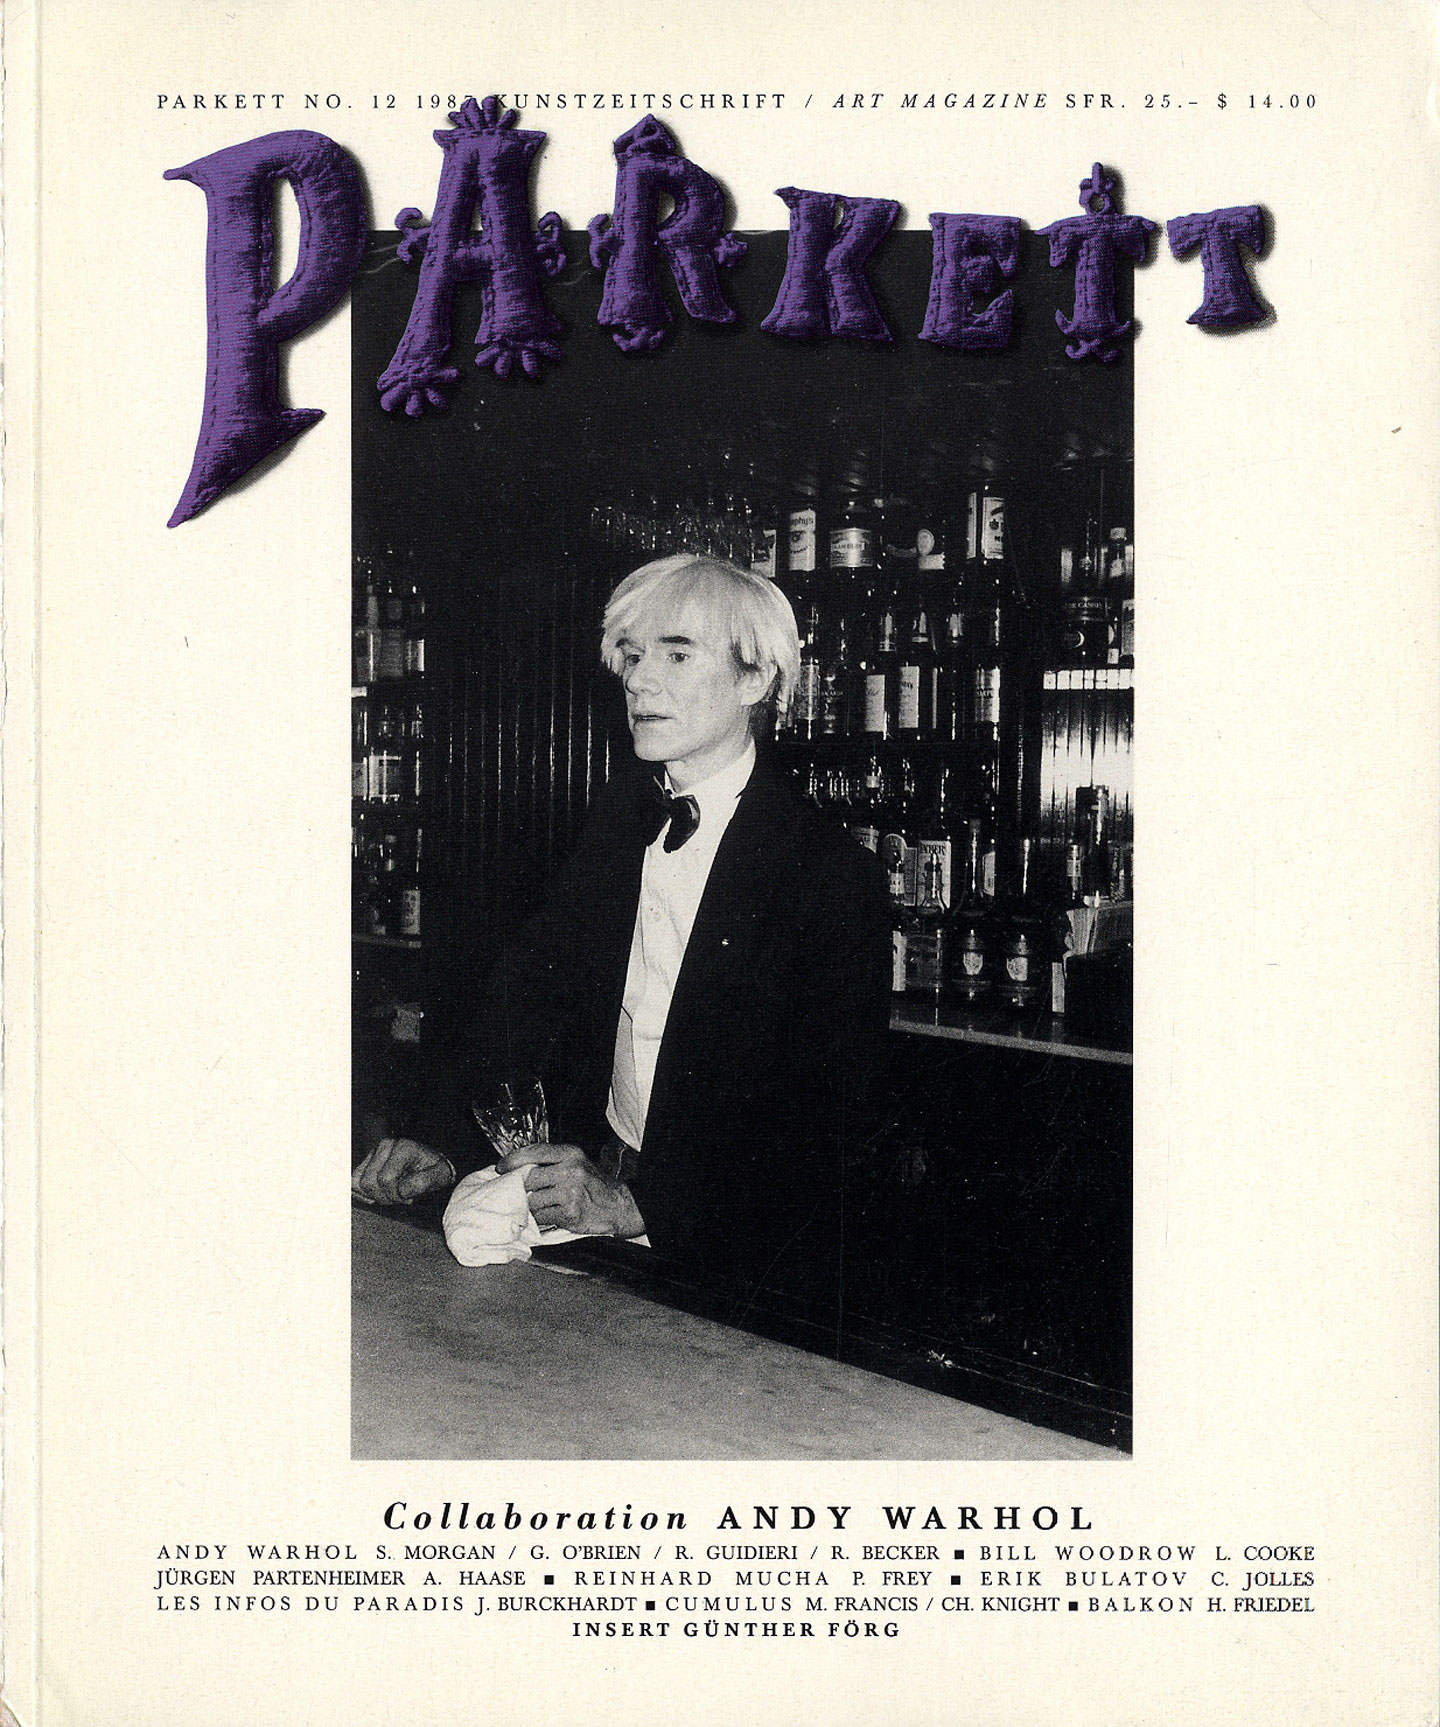 collaboration andy warhol parkett no 12 parkett art magazine no 12 1987